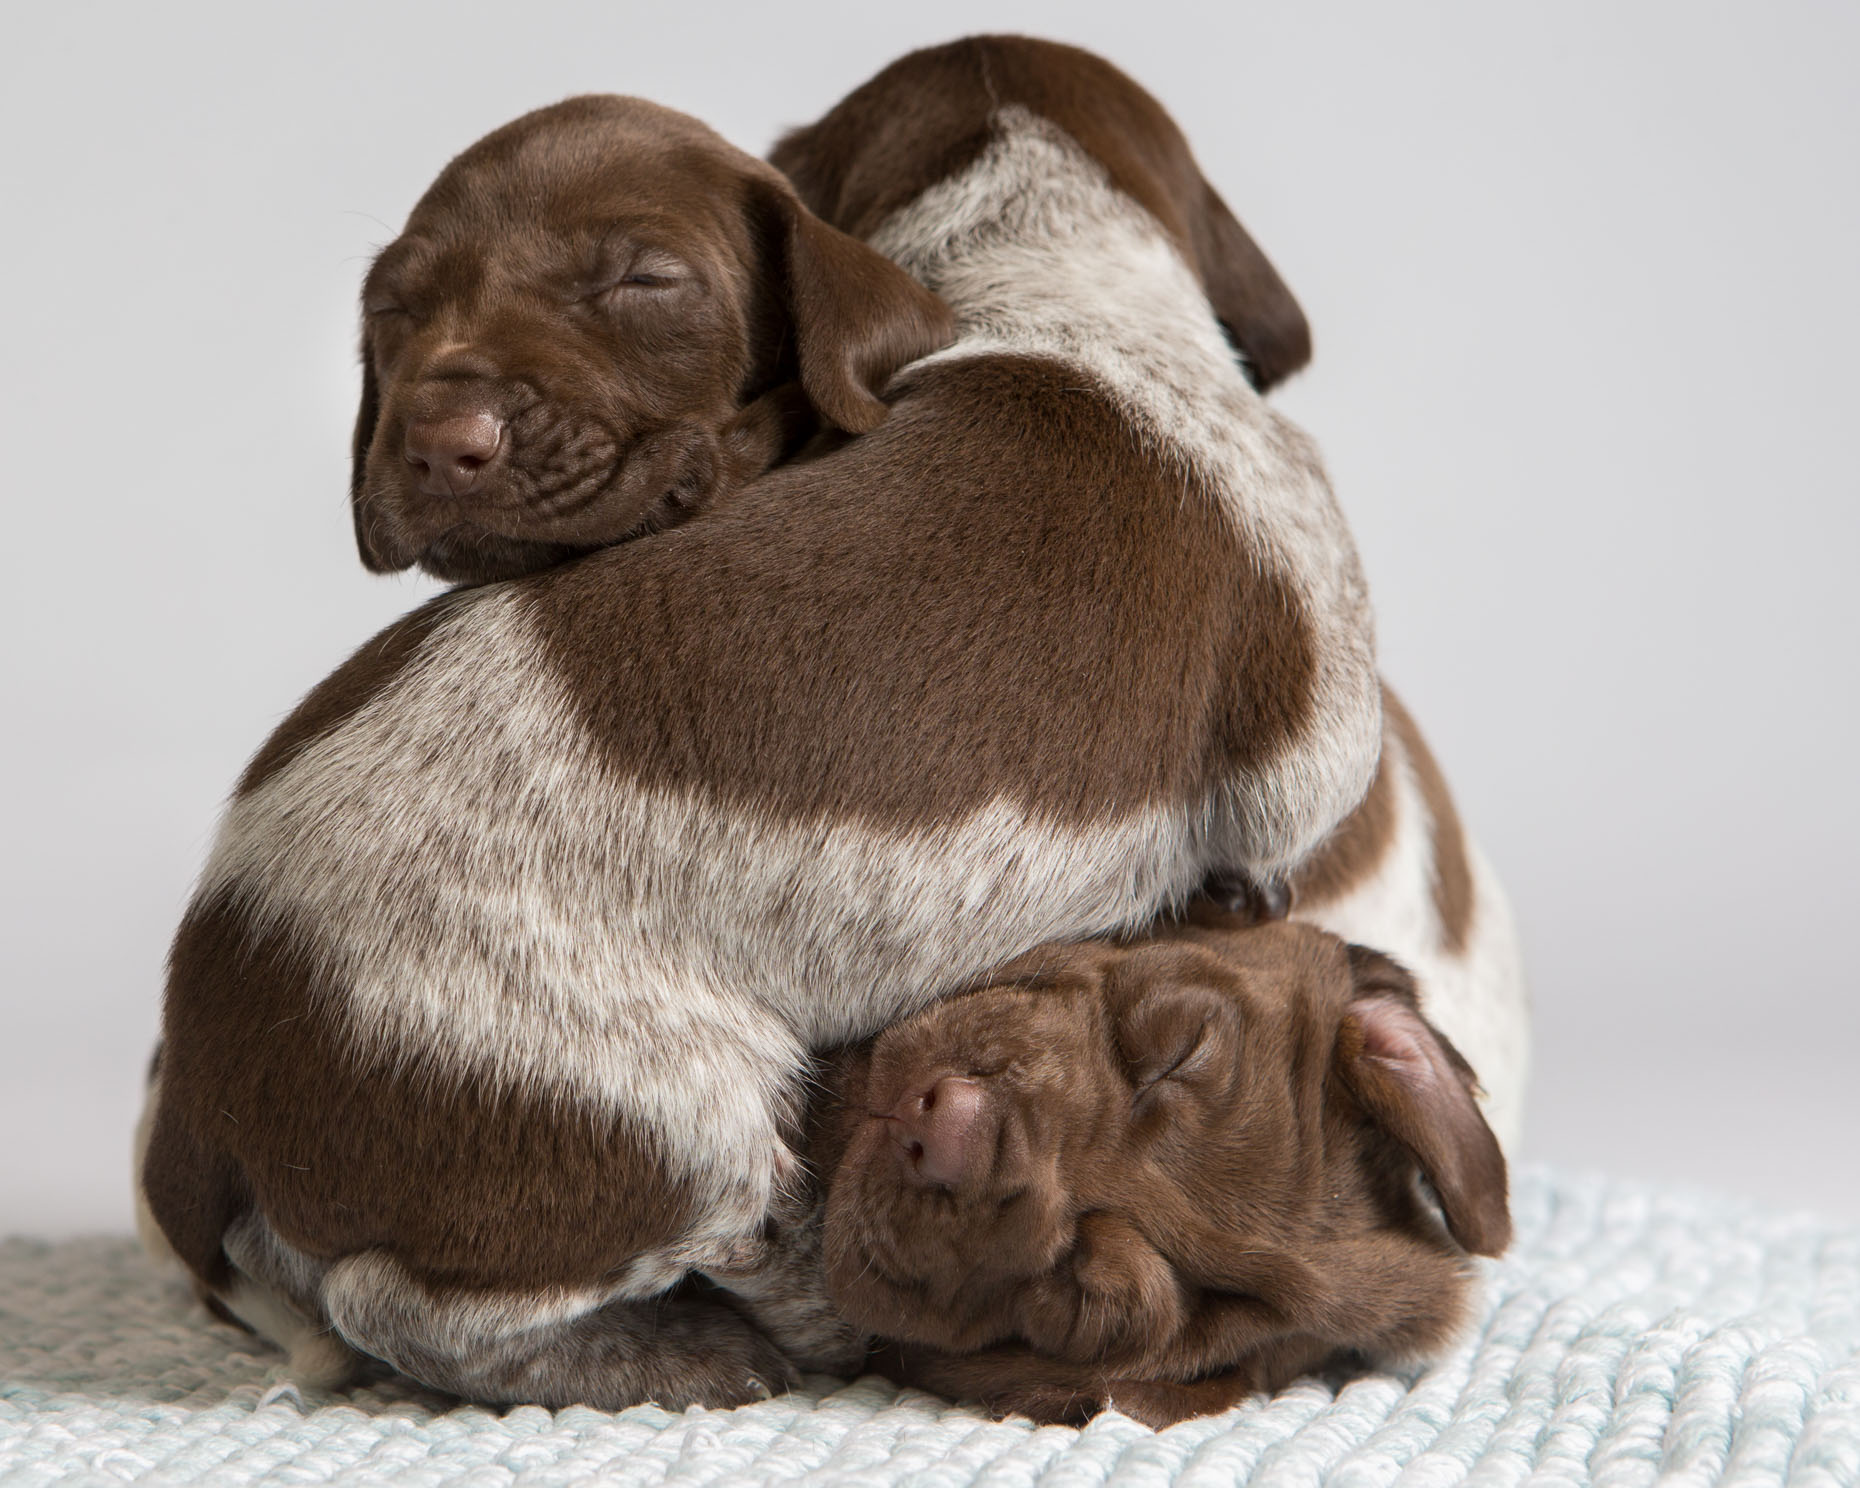 Dog and Pet Photography  |  Pointer Puppy Pile by Mark Rogers